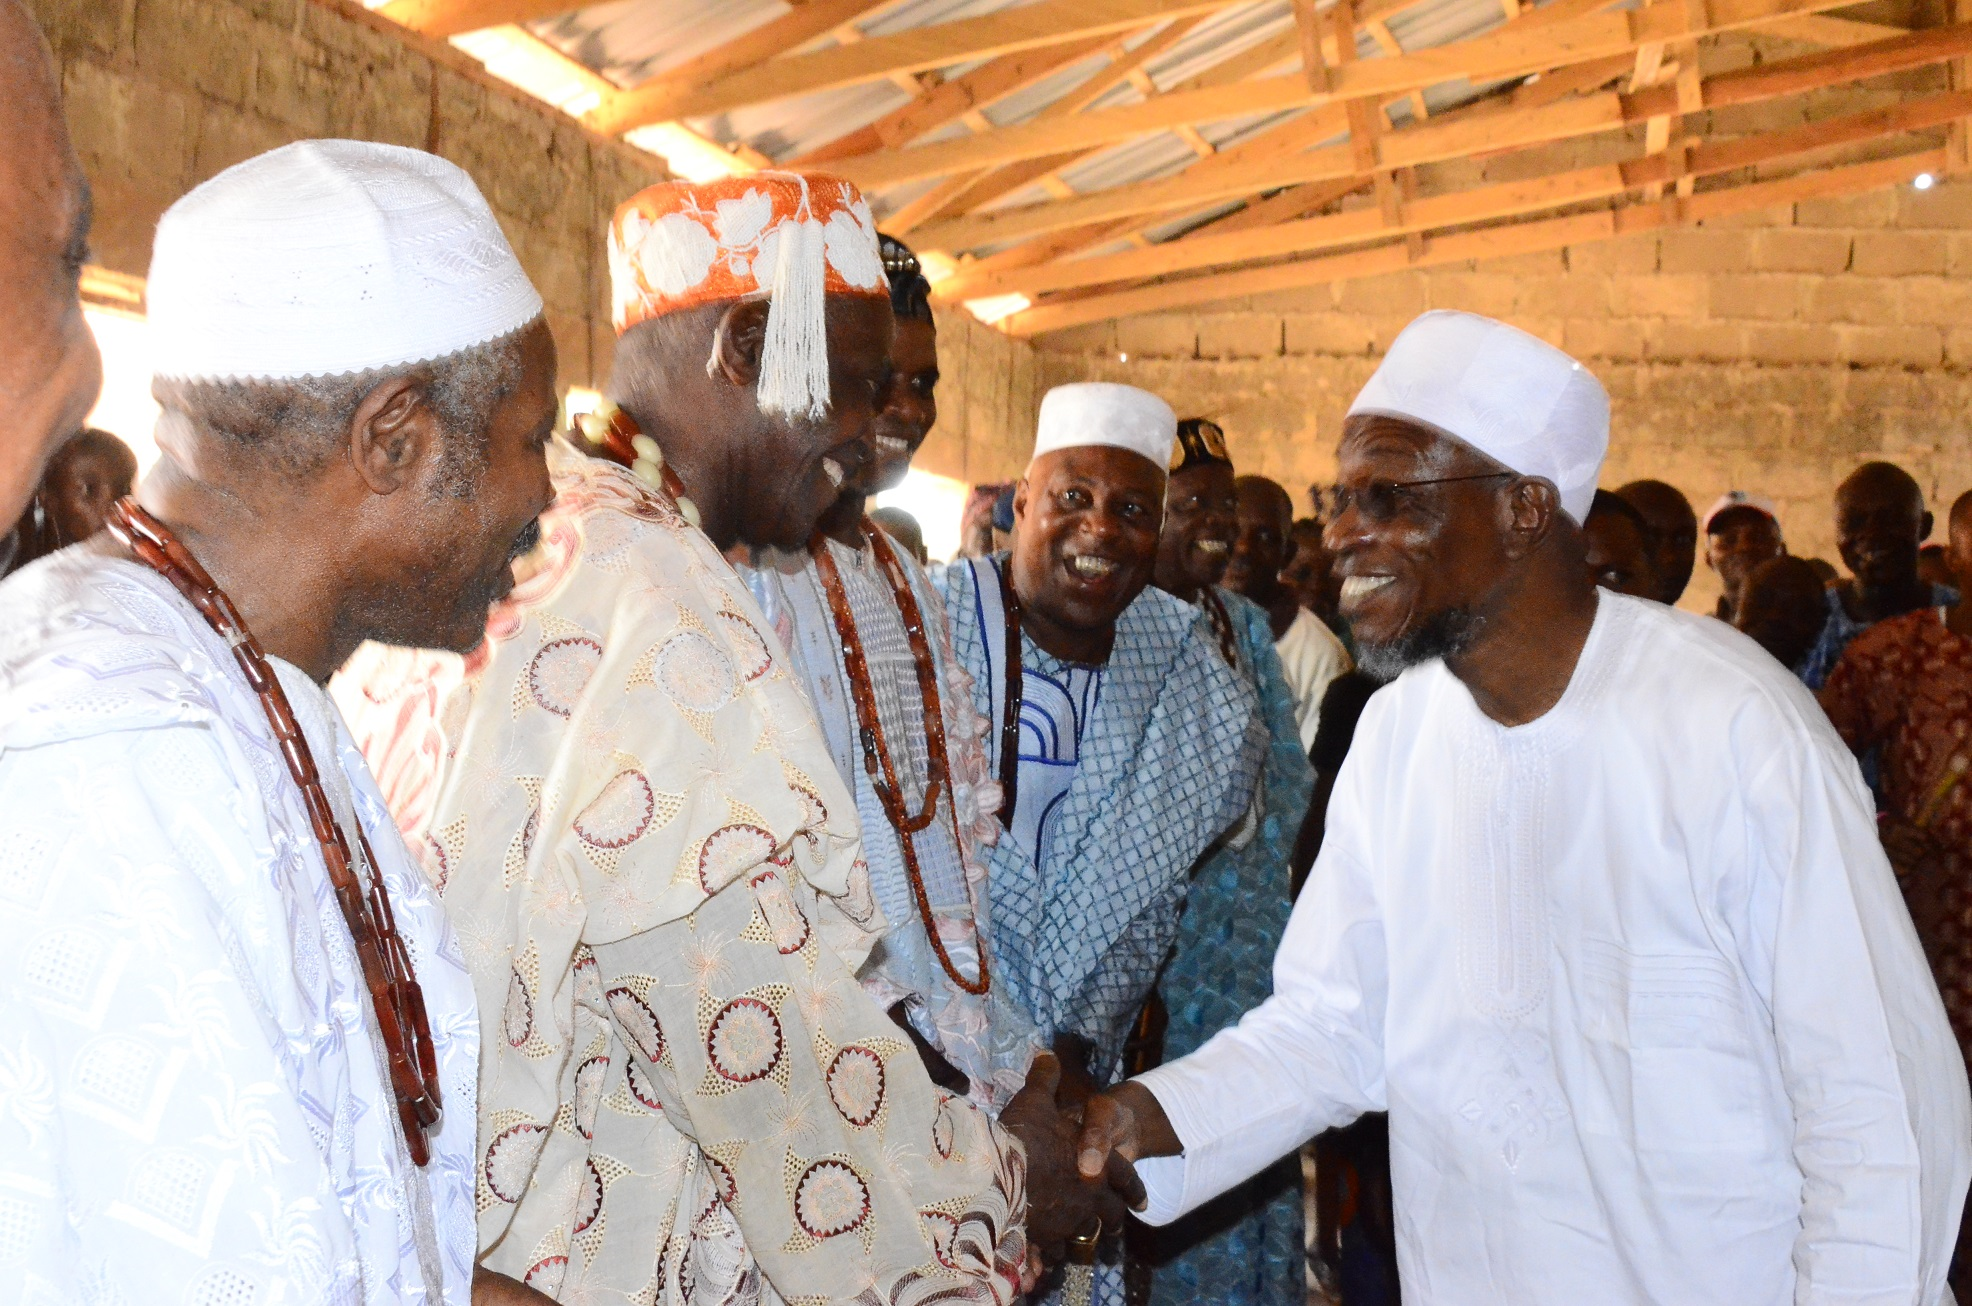 From right- Governor State of Osun, Ogbeni Rauf Aregbesola; Asileyun of Sileyun-Ijesa, Oba Peter Ade- Atayero; Asolo of Isolo-Ijesa, Oba John Ade-Adeyemi and  Olupoye of Ipoye-Ijesa, Oba Joshua Adefioye, during the grassroot Campaign for Presidential, National and State House of Assemblies, at Ilaa-Ijesa, Atakumosa-West Local Government on Monday 09/03/2015.